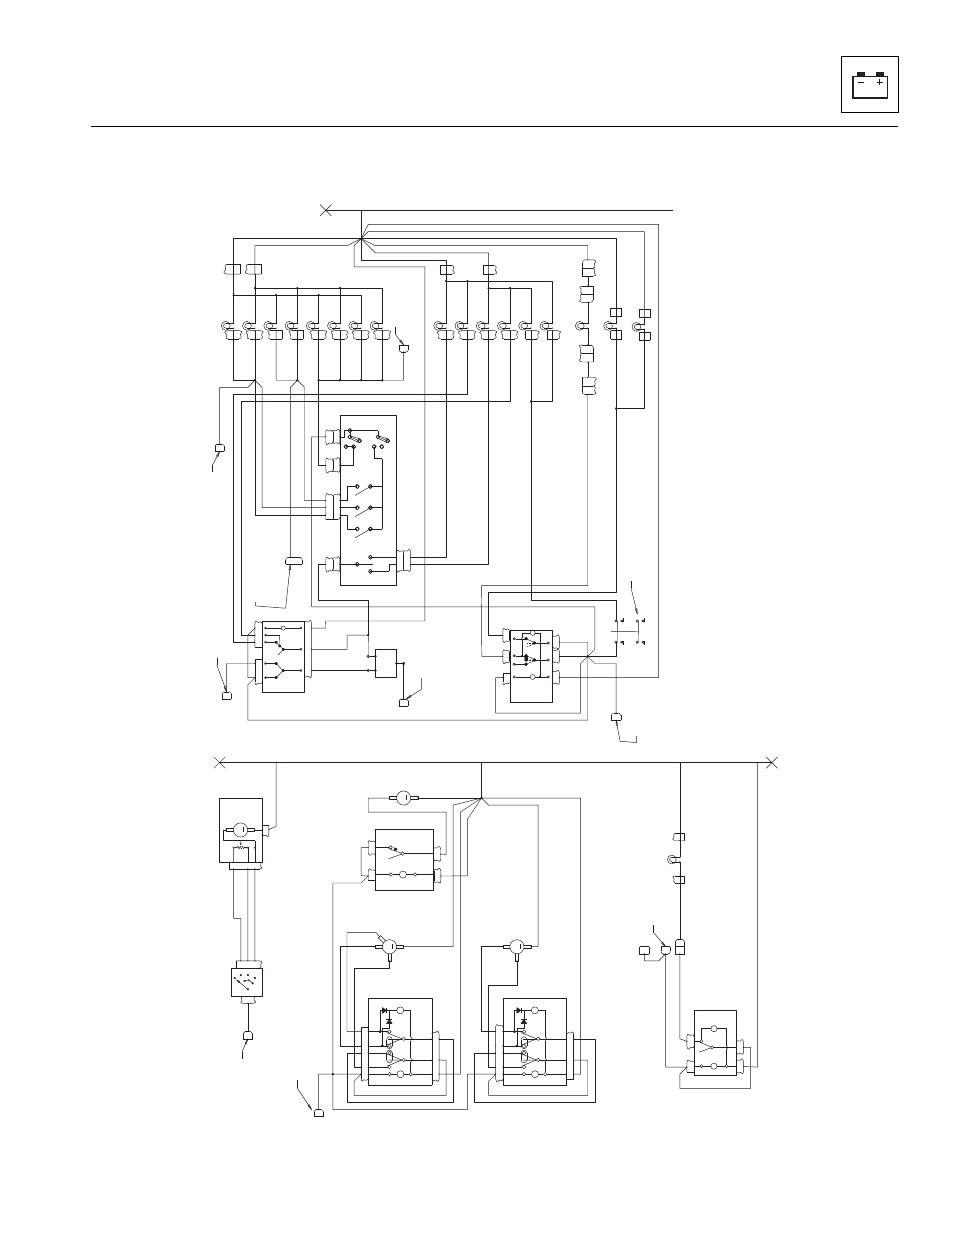 1 6036 & 6042 electrical schematic (continued), Hea ter